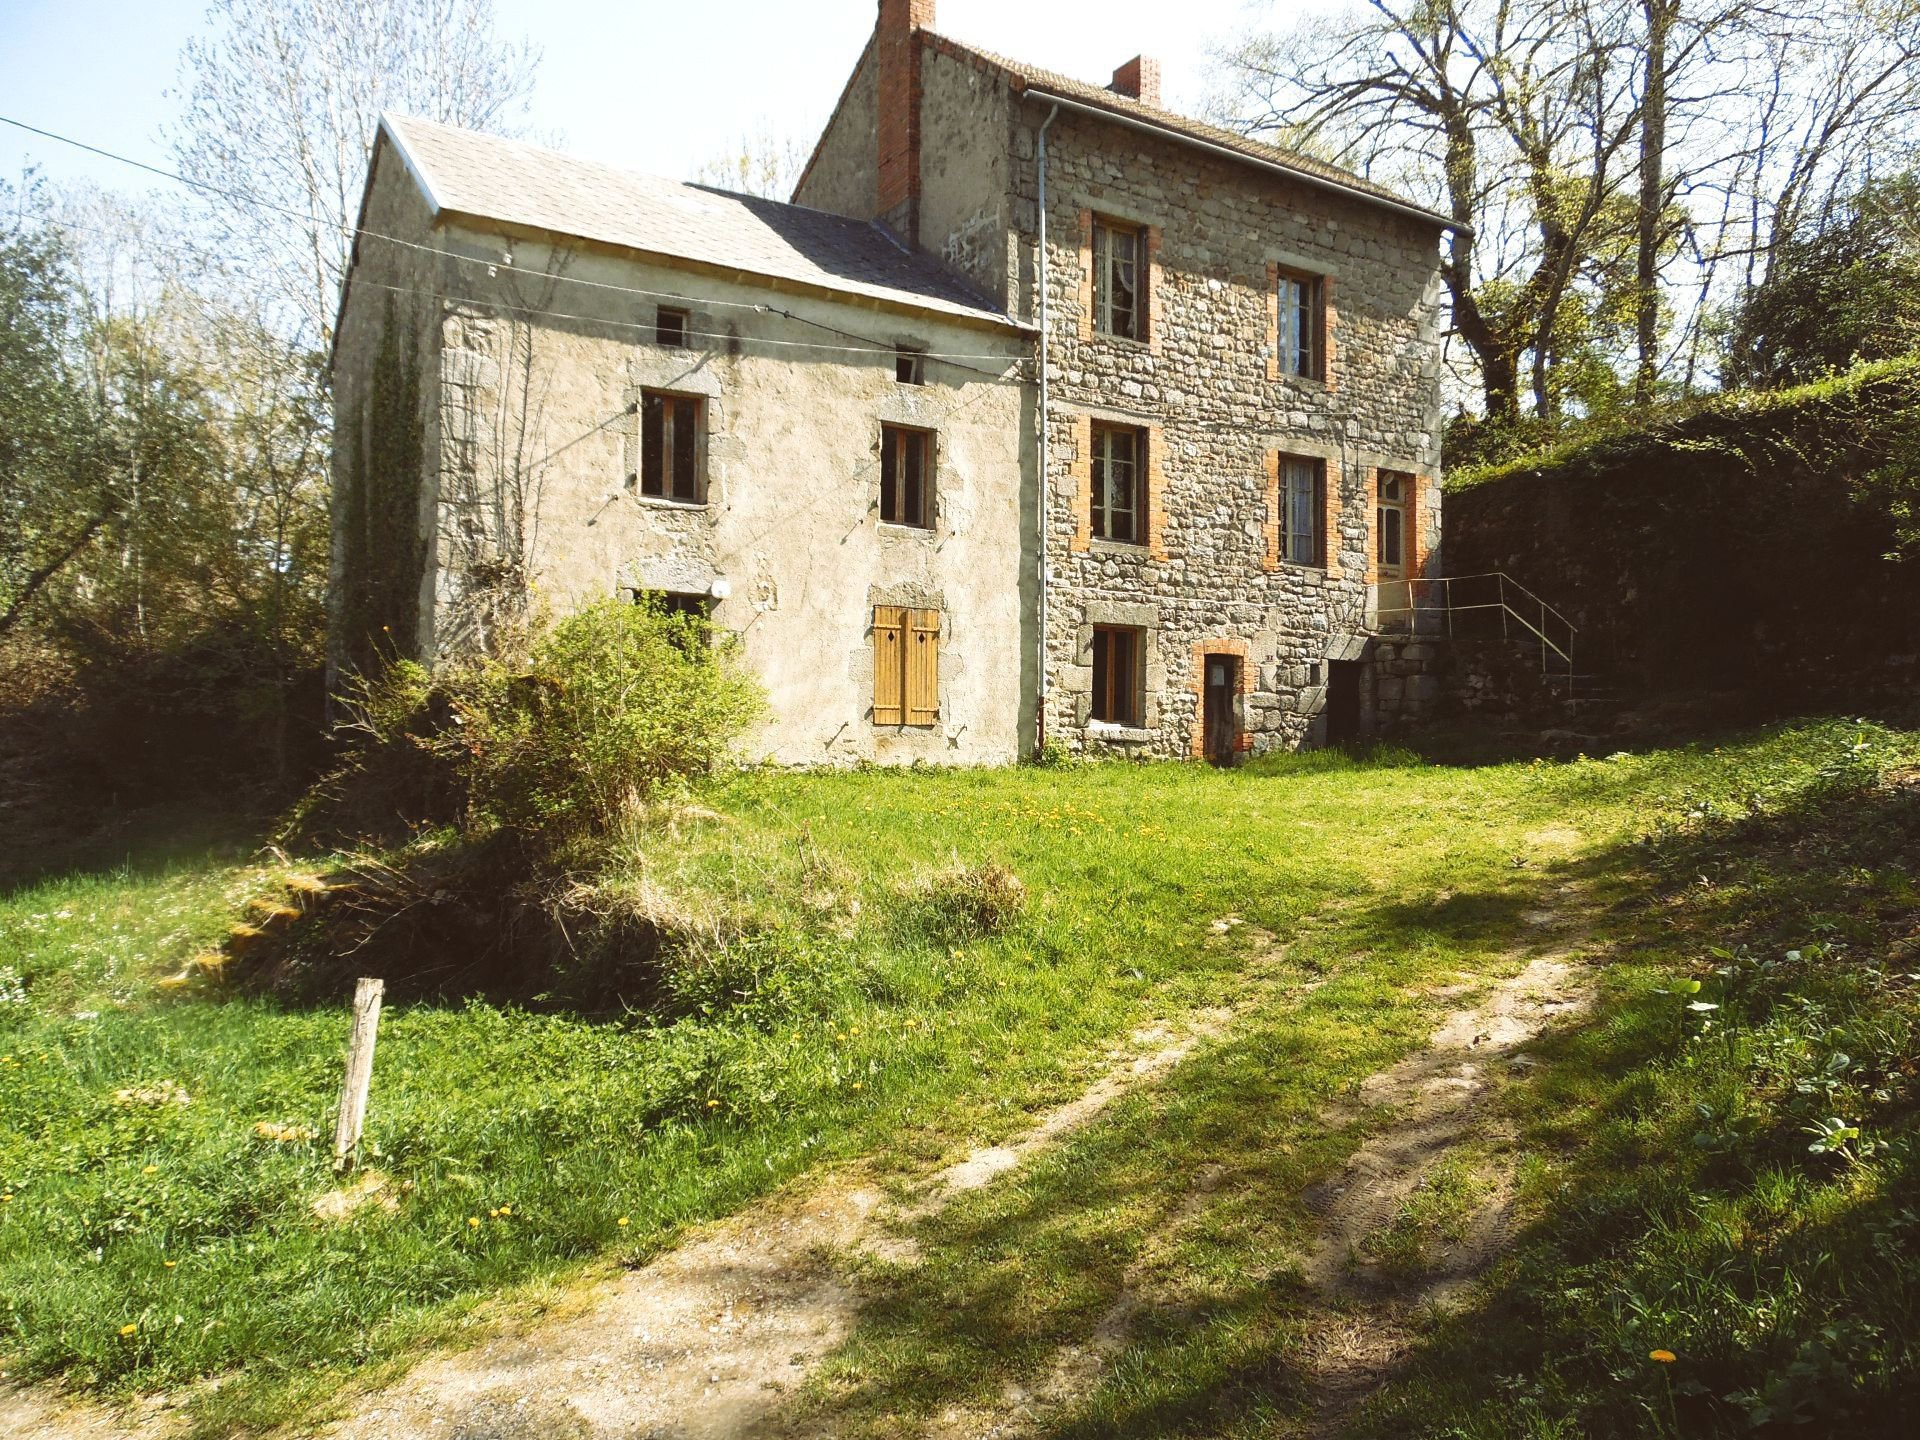 For sale a property of 2 houses with land (1843m²)